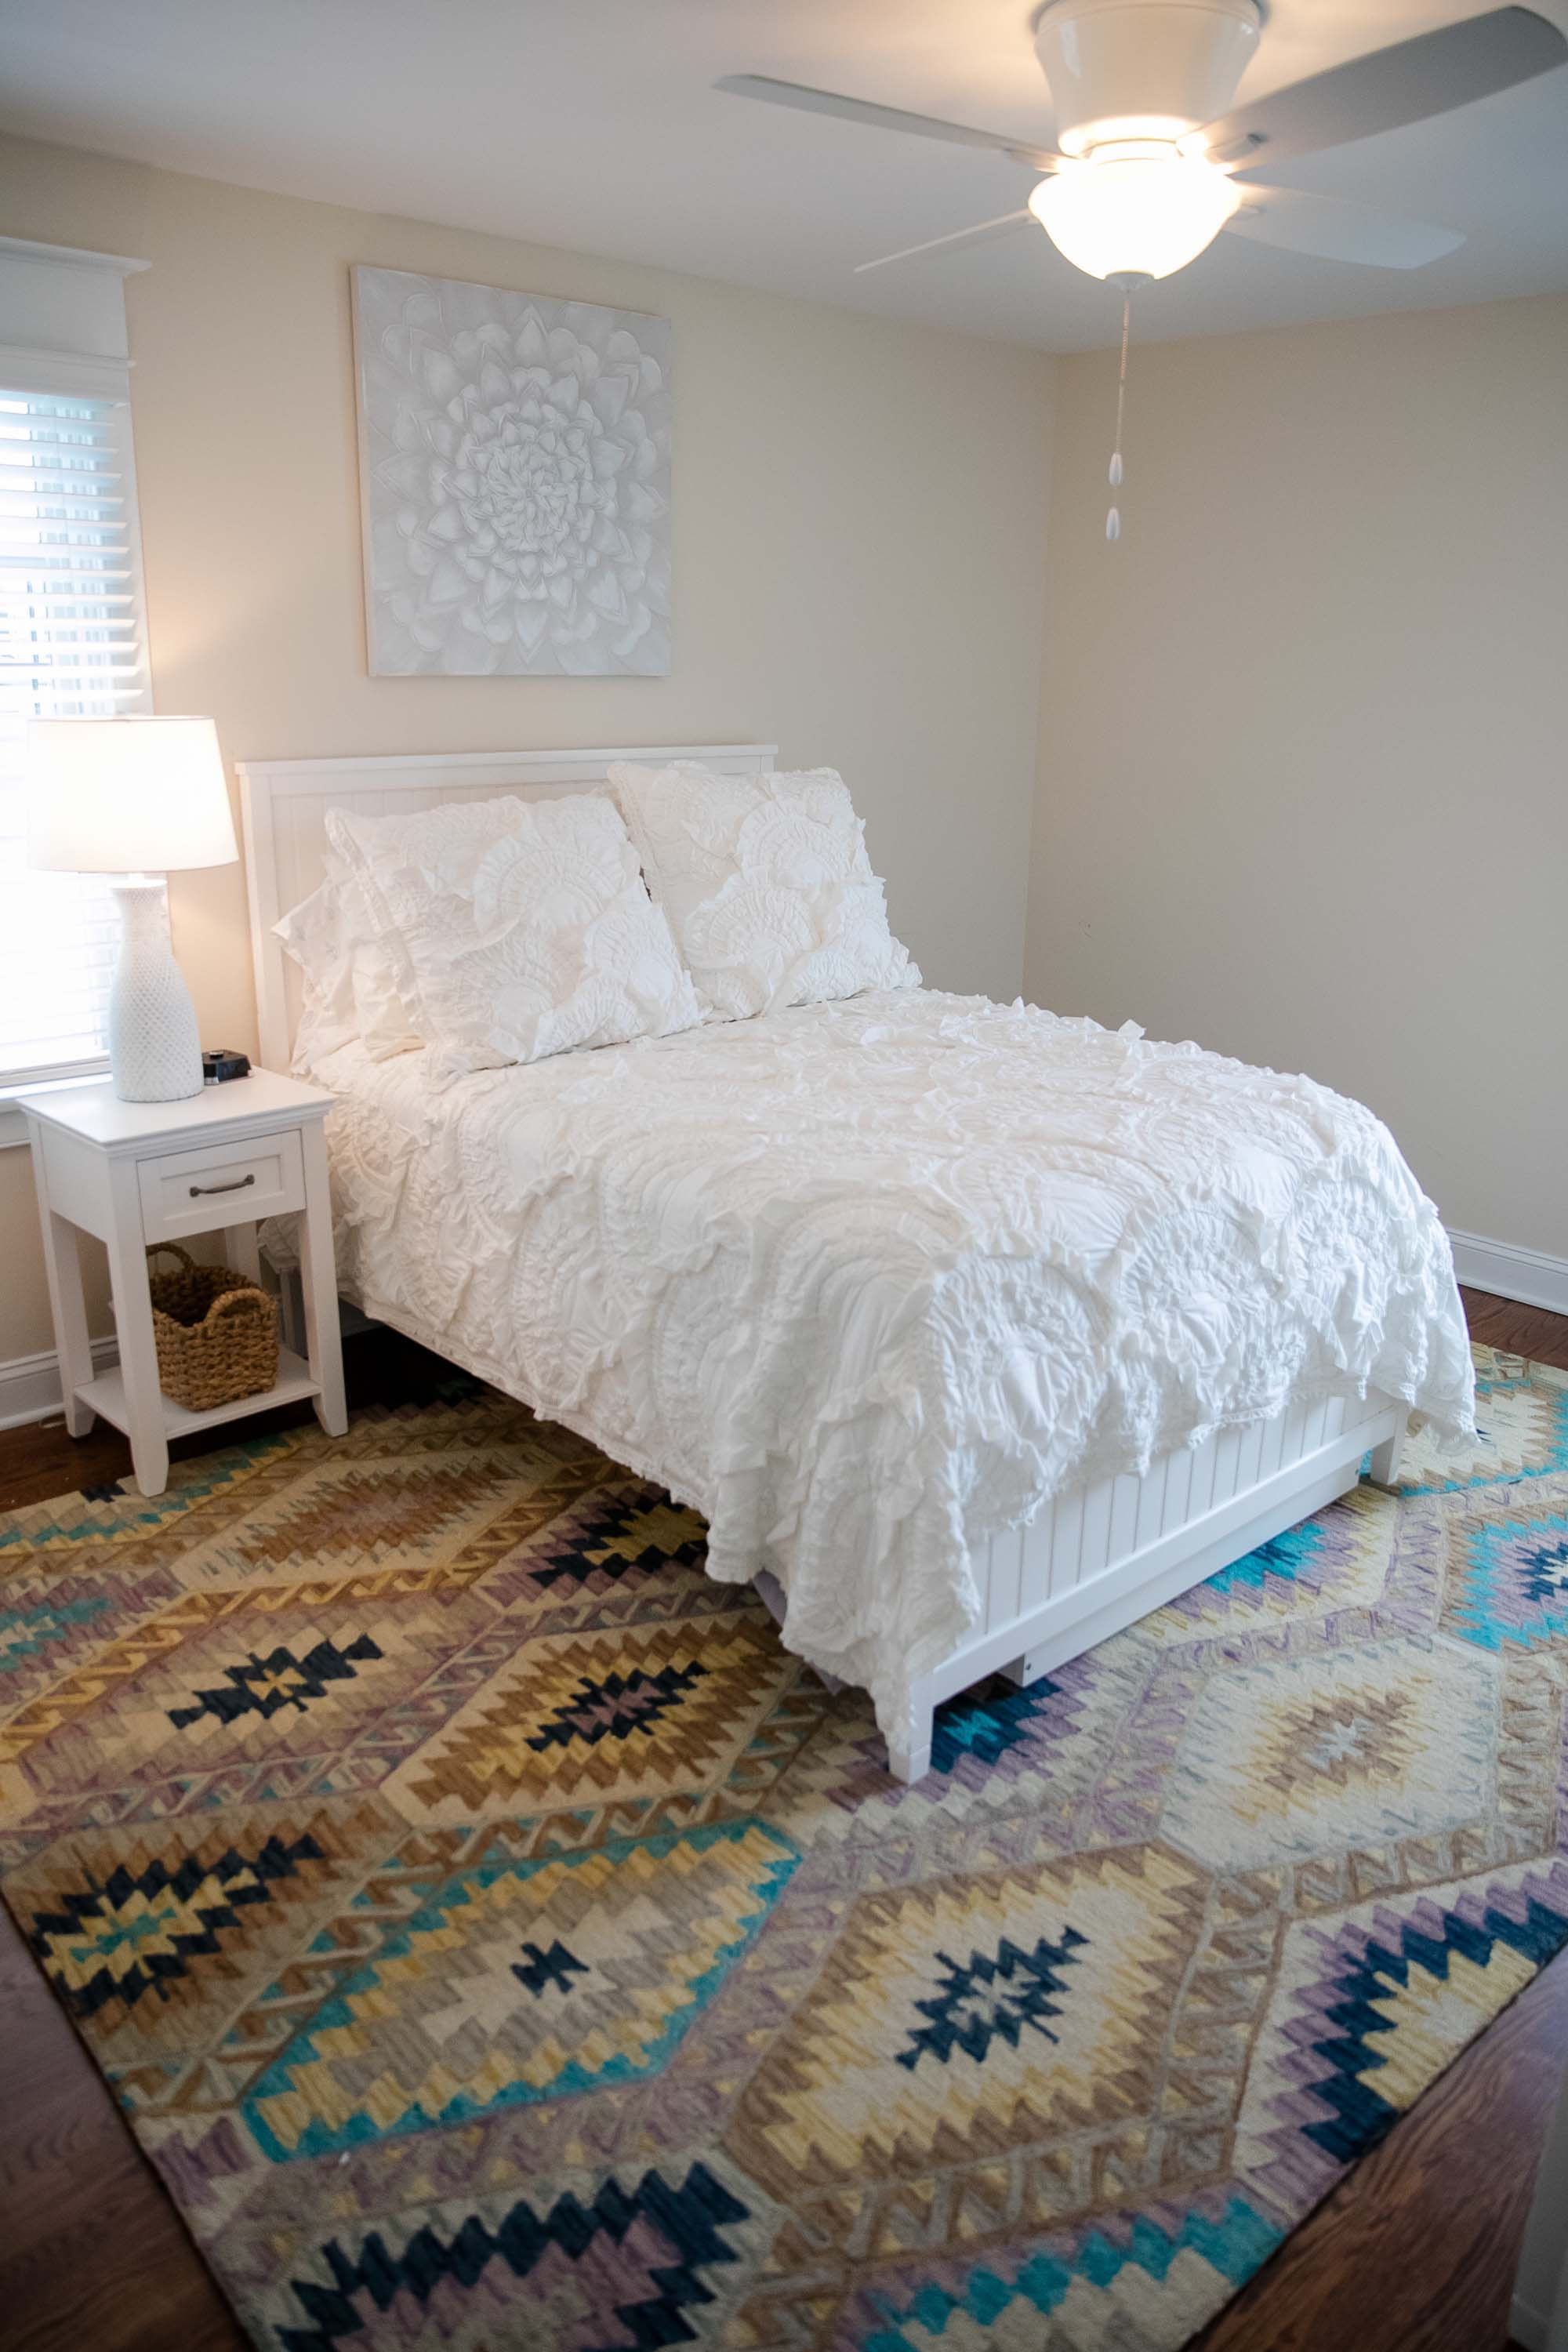 White bed, resting on tribal print area rug